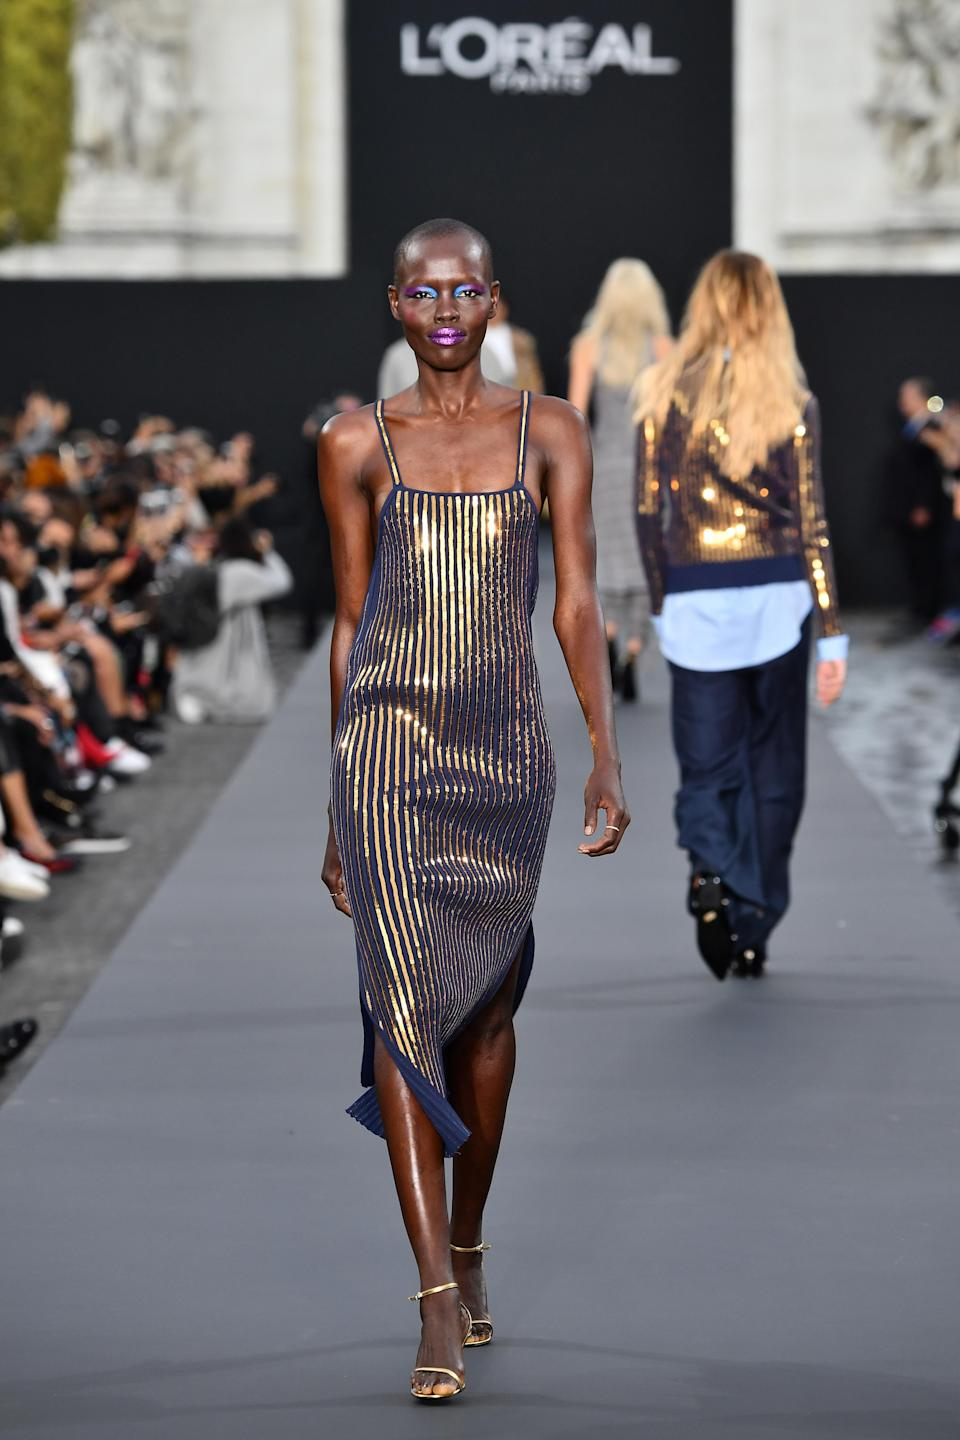 <p>The South Sudanese face stunned in bright makeup. (Photo: L'Oreal Paris) </p>